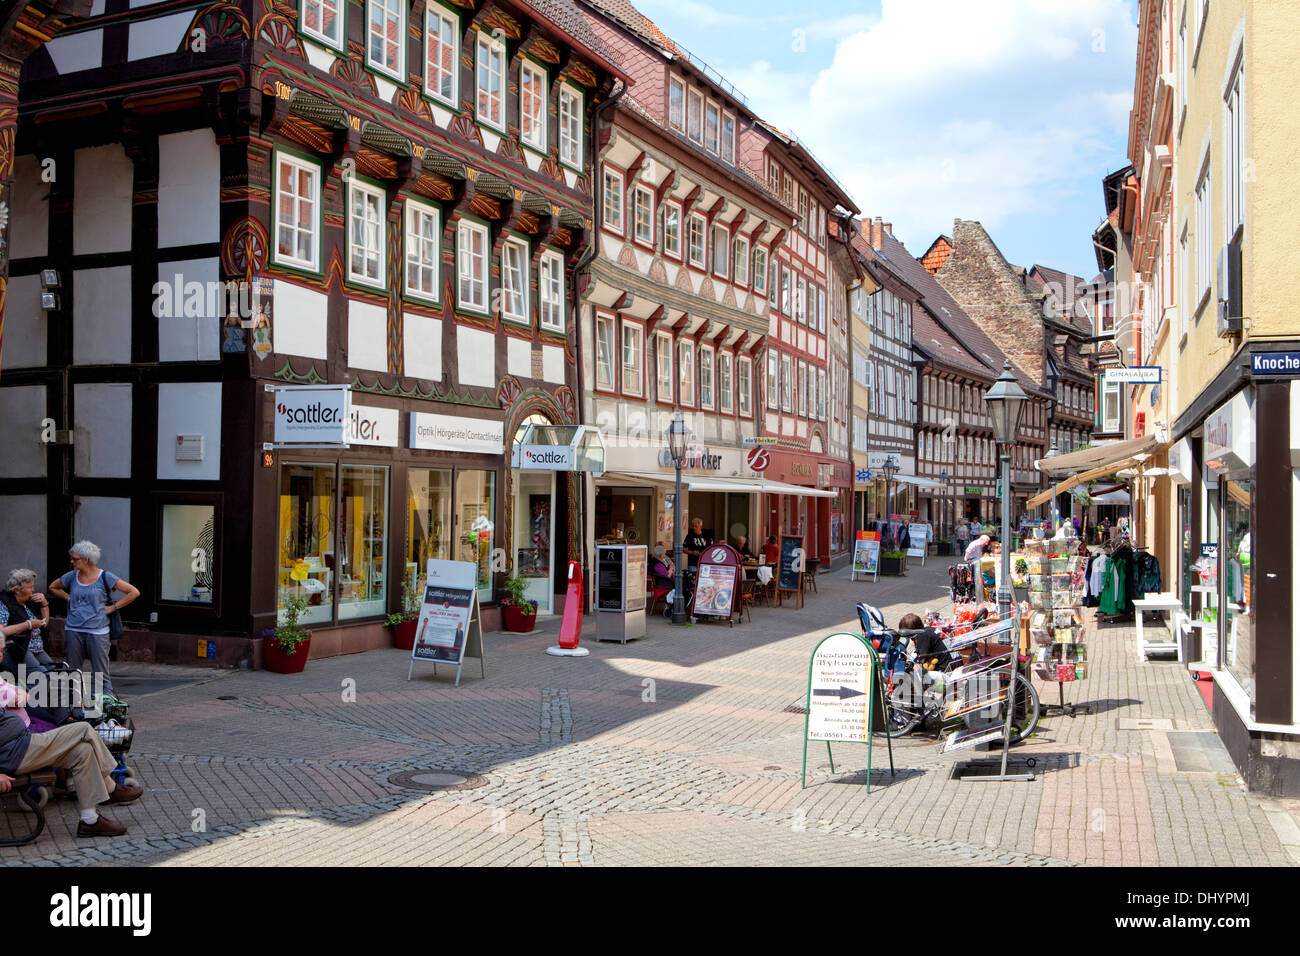 Half-timbered houses, Einbeck, Lower Saxony, Germany, Europe, - Stock Image